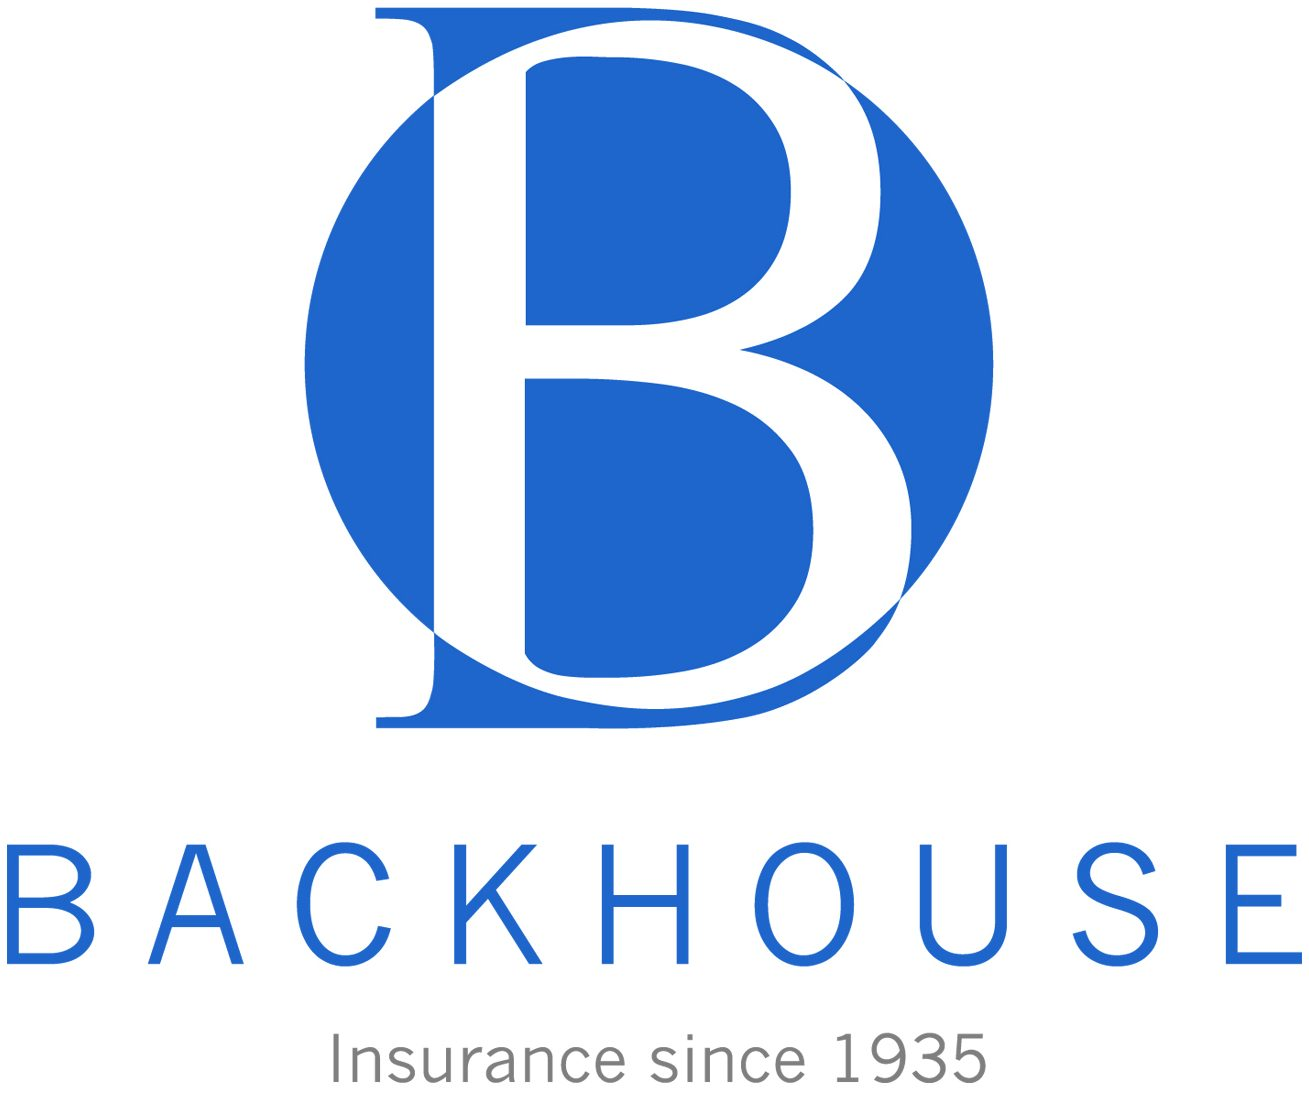 Backhouse Insurance Brokers